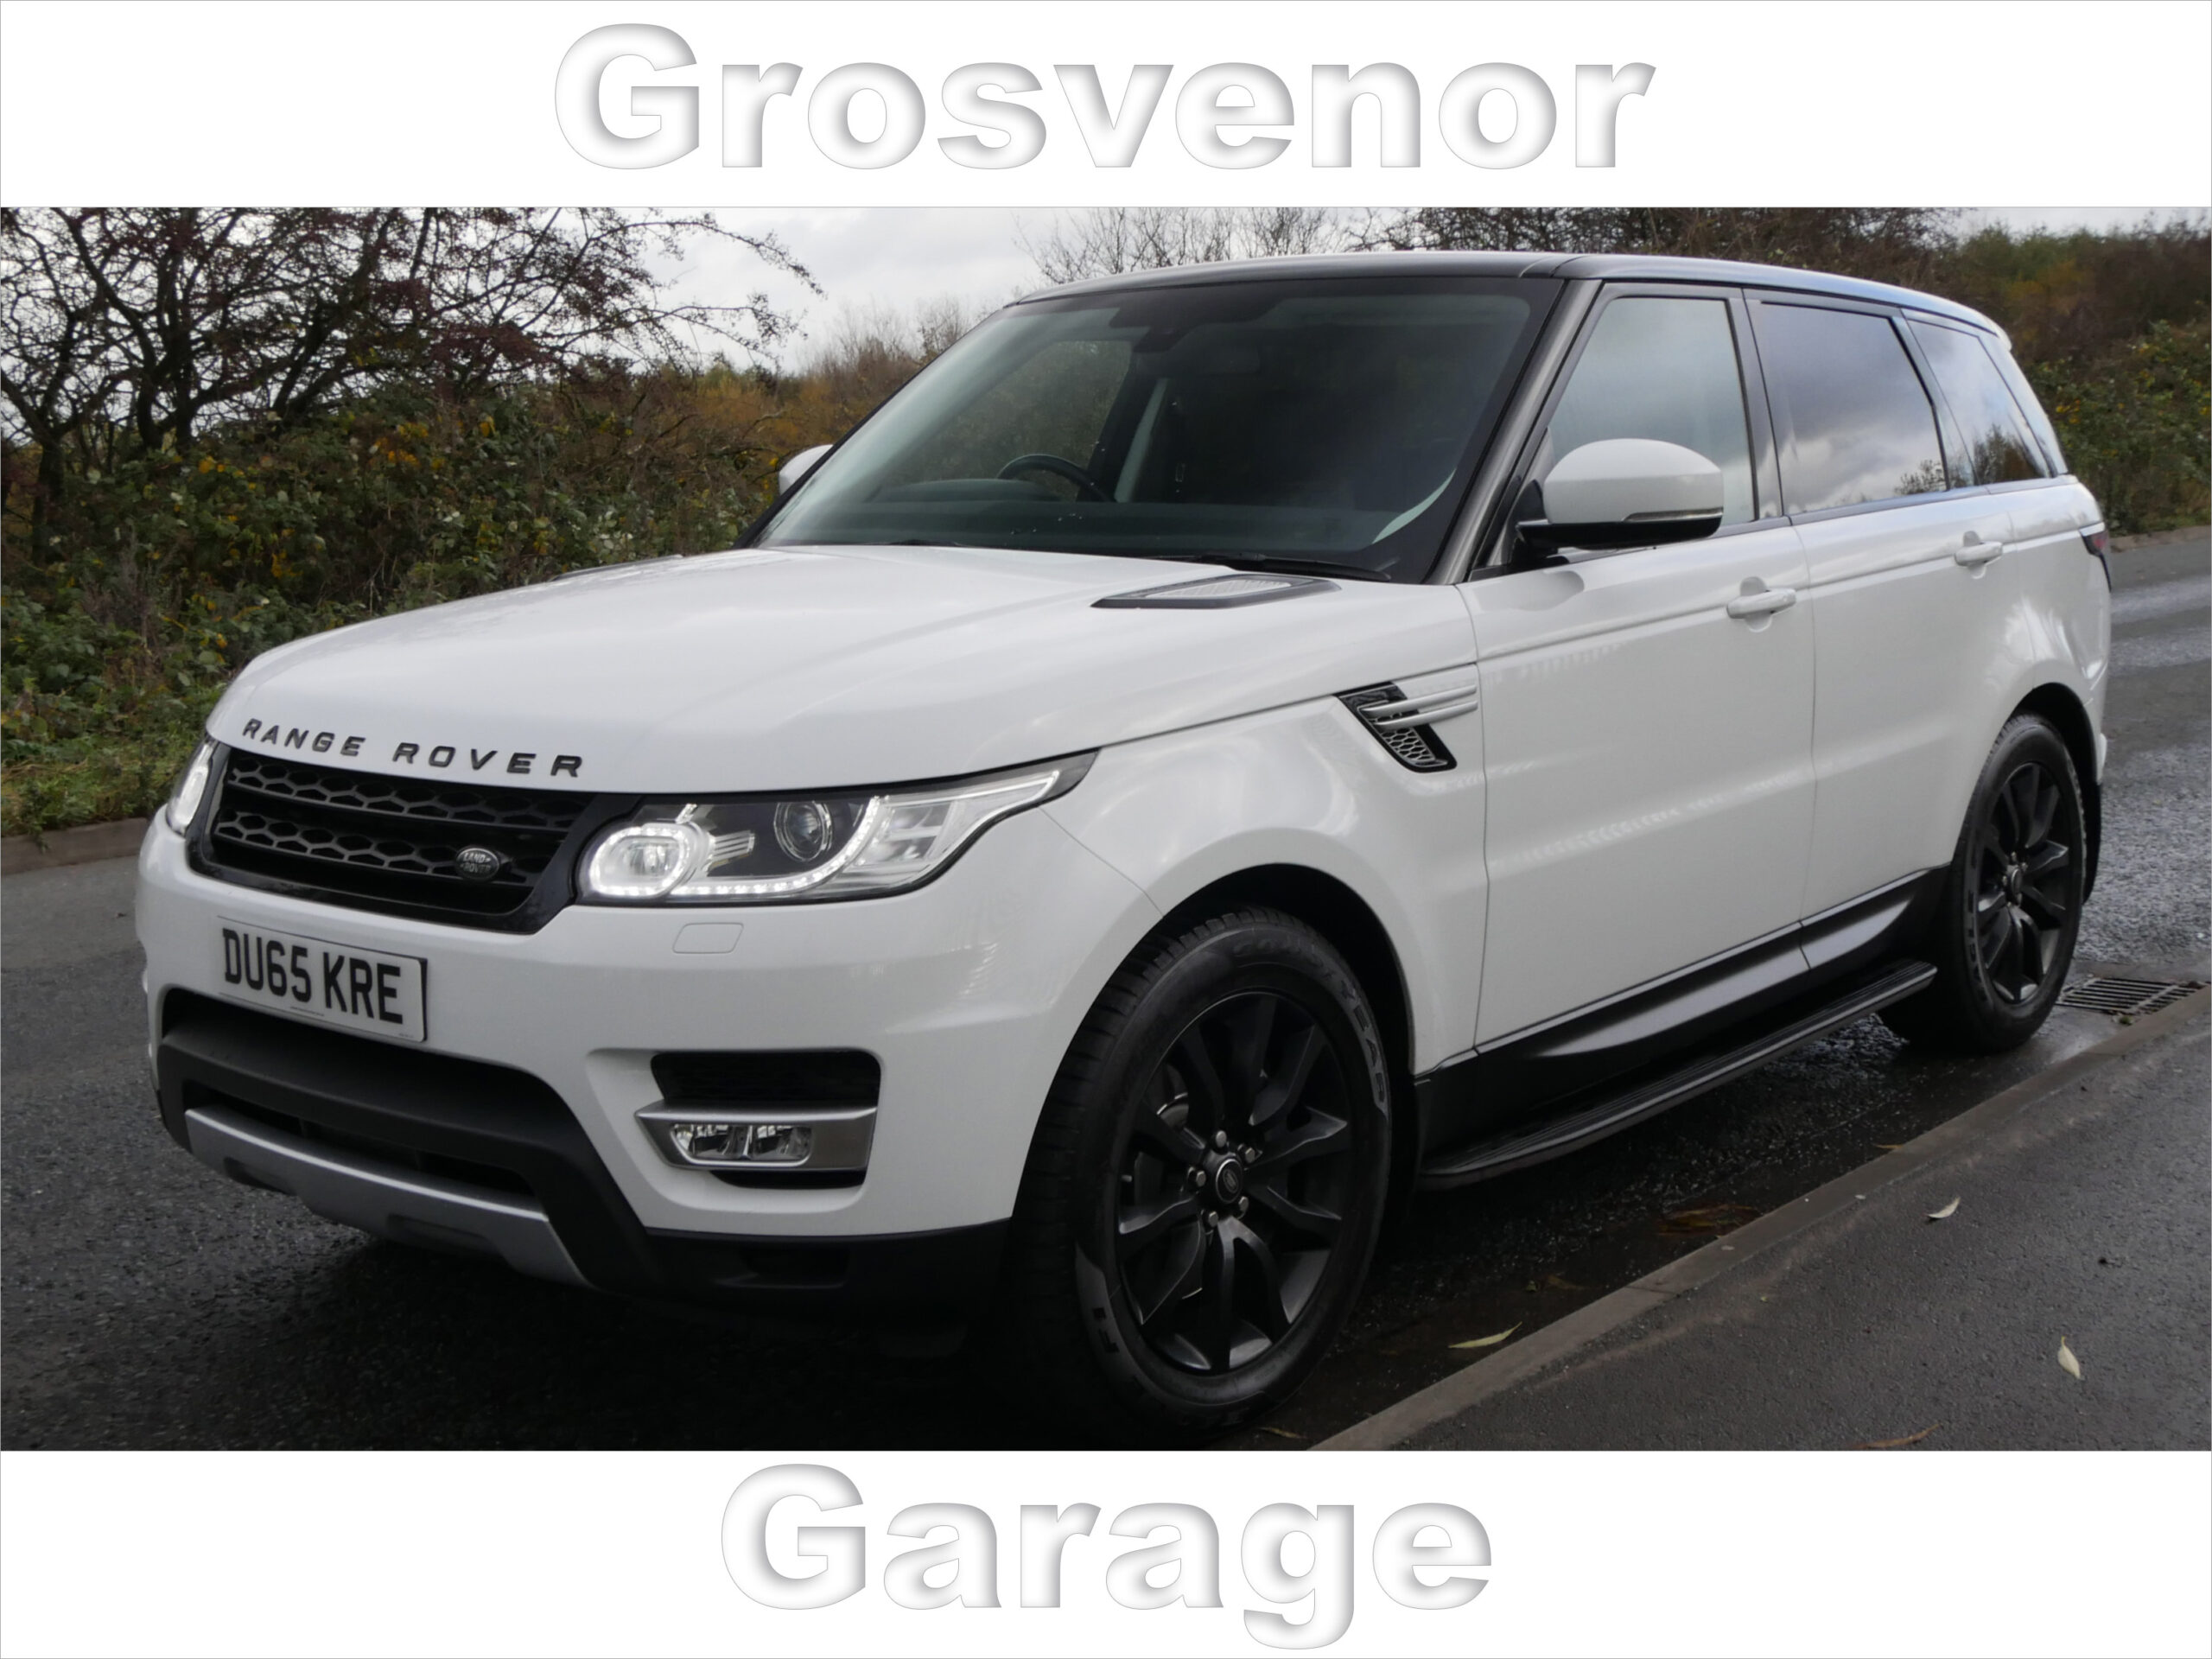 2016 (65) LAND ROVER RANGE ROVER SPORT 3.0 SDV6 HSE 5DR AUTOMATIC